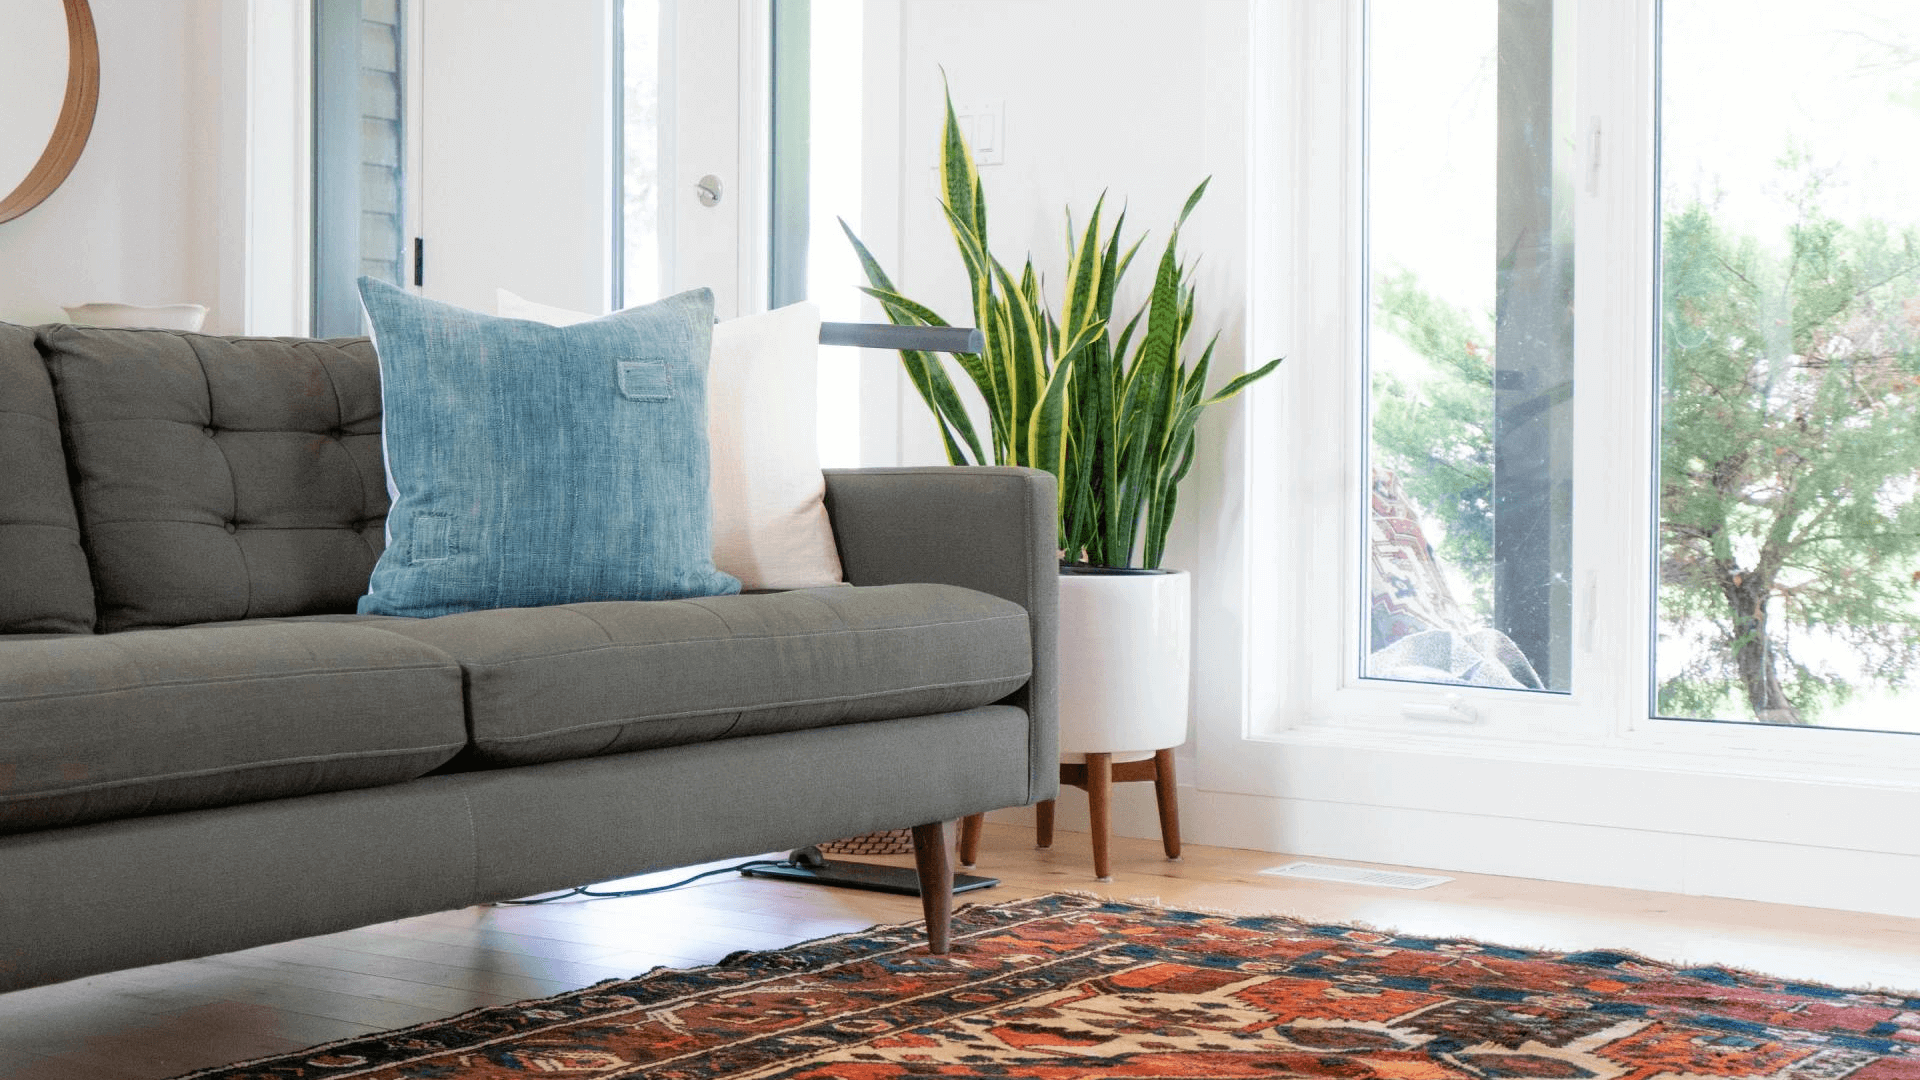 The area rug compliment these wood floors